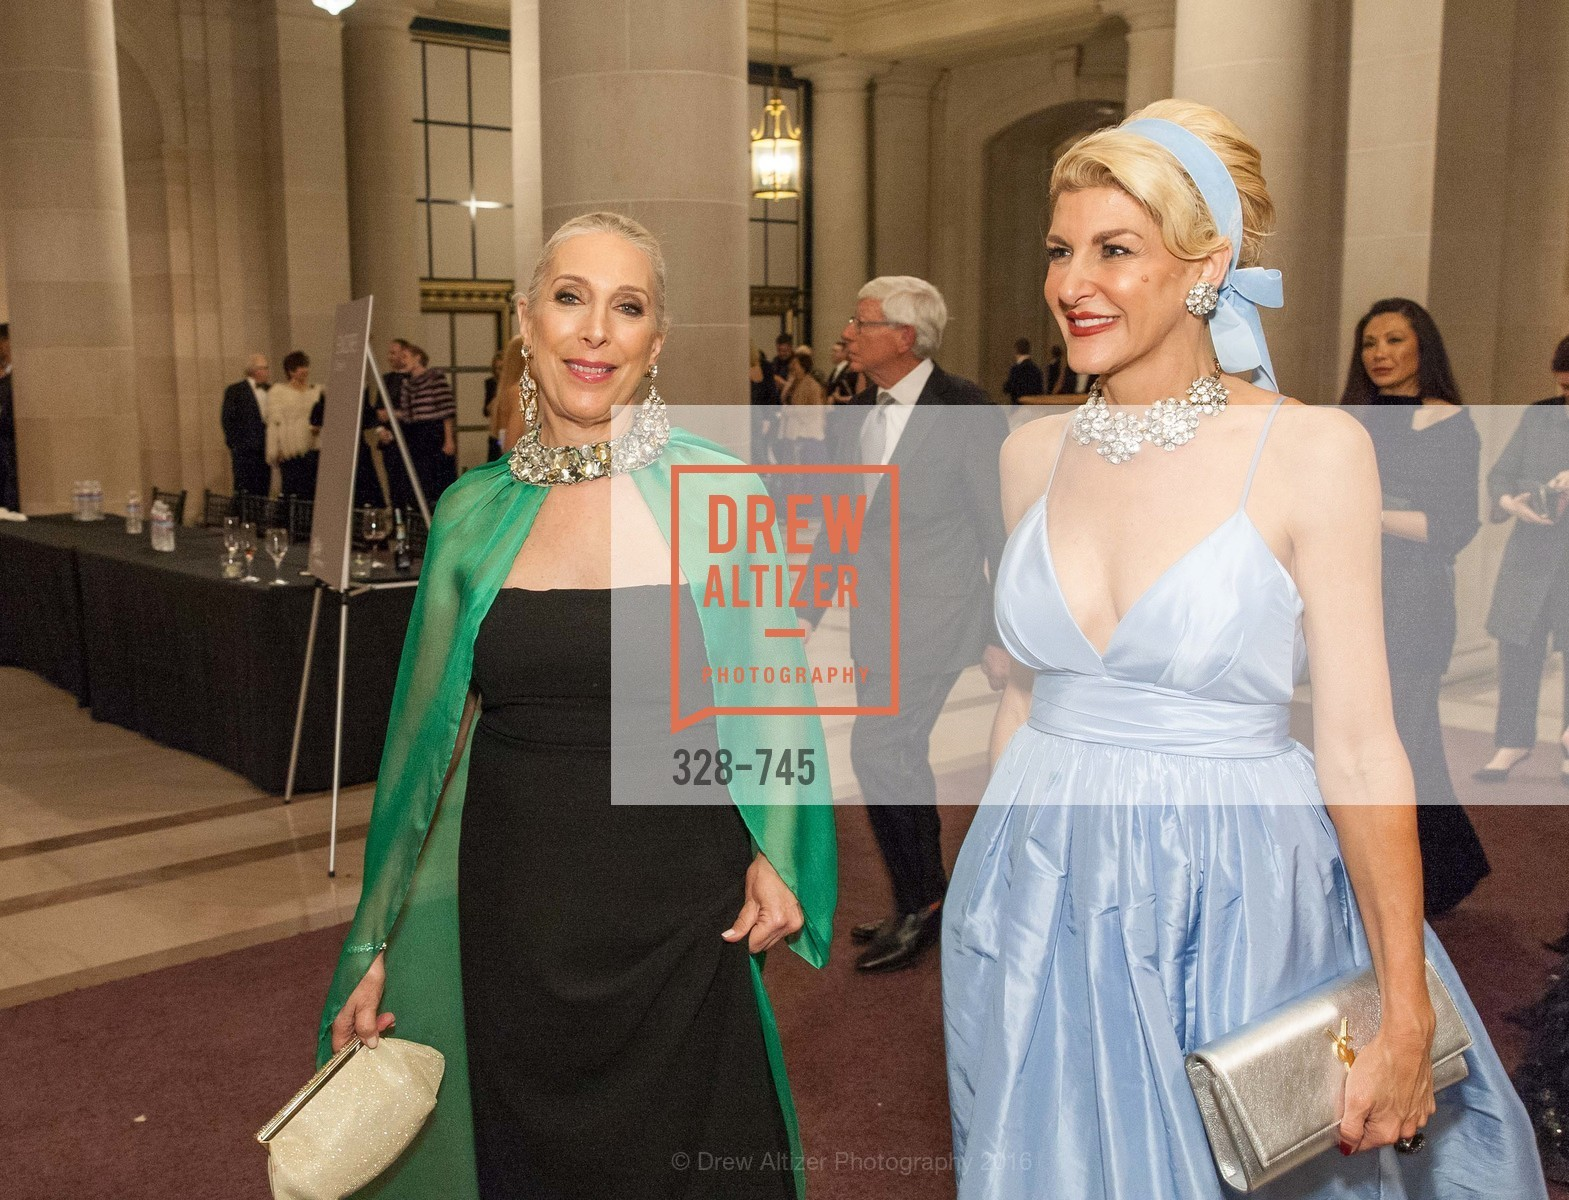 Betsy Linder, Karen Caldwell, San Francisco Ballet 2016 Opening Night Gala Part 2, San Francisco City Hall, January 21st, 2016,Drew Altizer, Drew Altizer Photography, full-service agency, private events, San Francisco photographer, photographer california